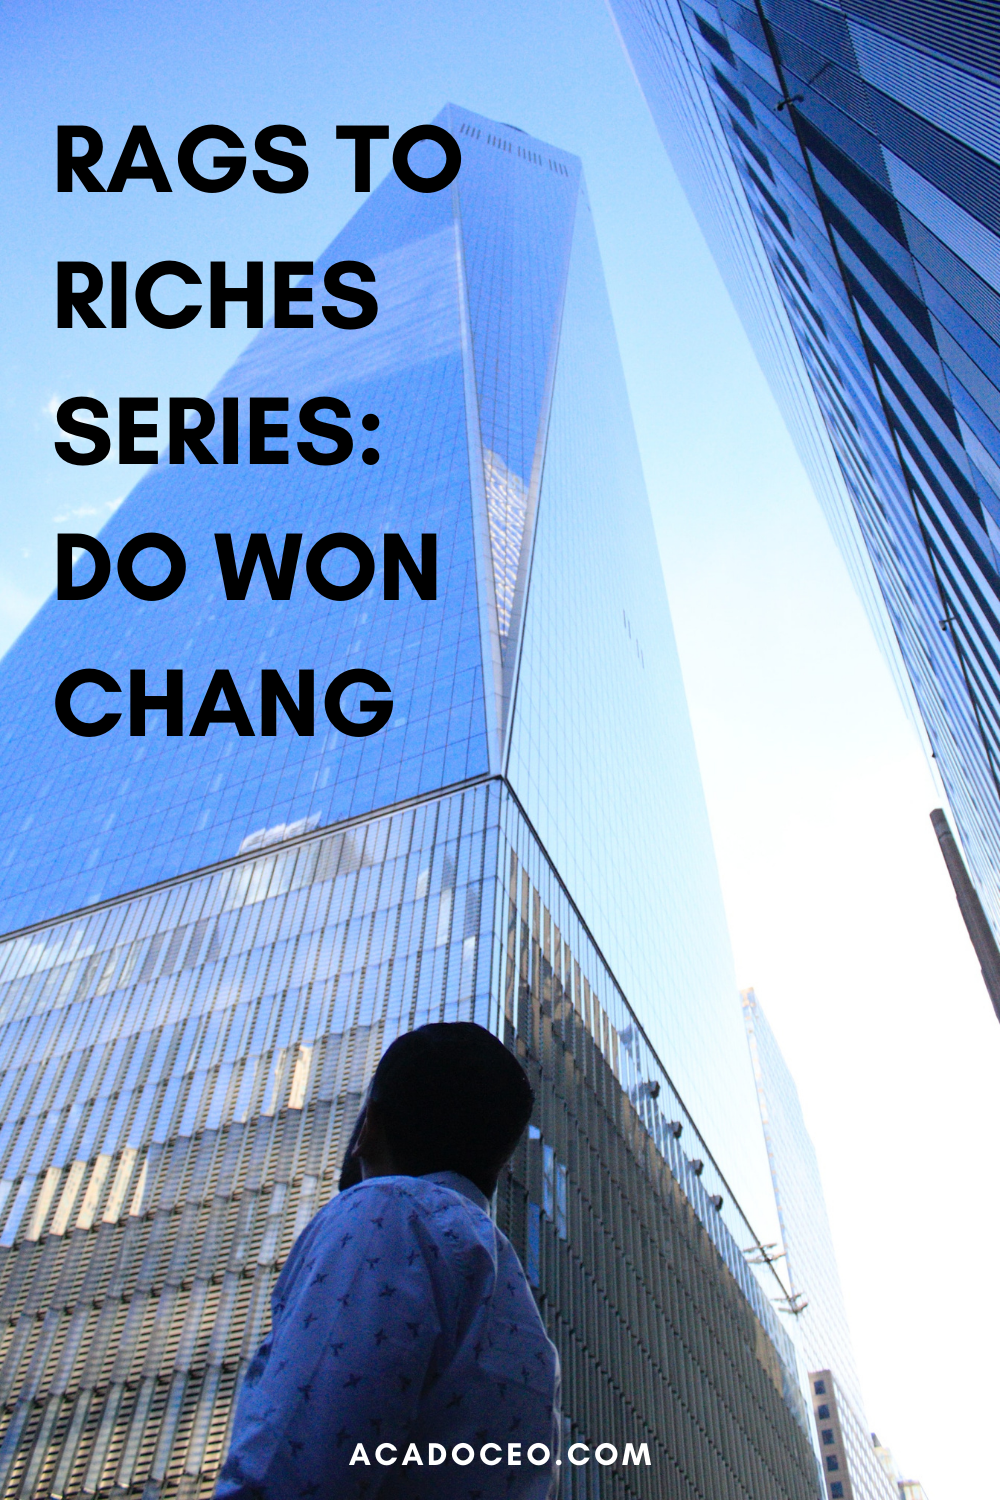 RAGS TO RICHES SERIES: DO WON CHANG